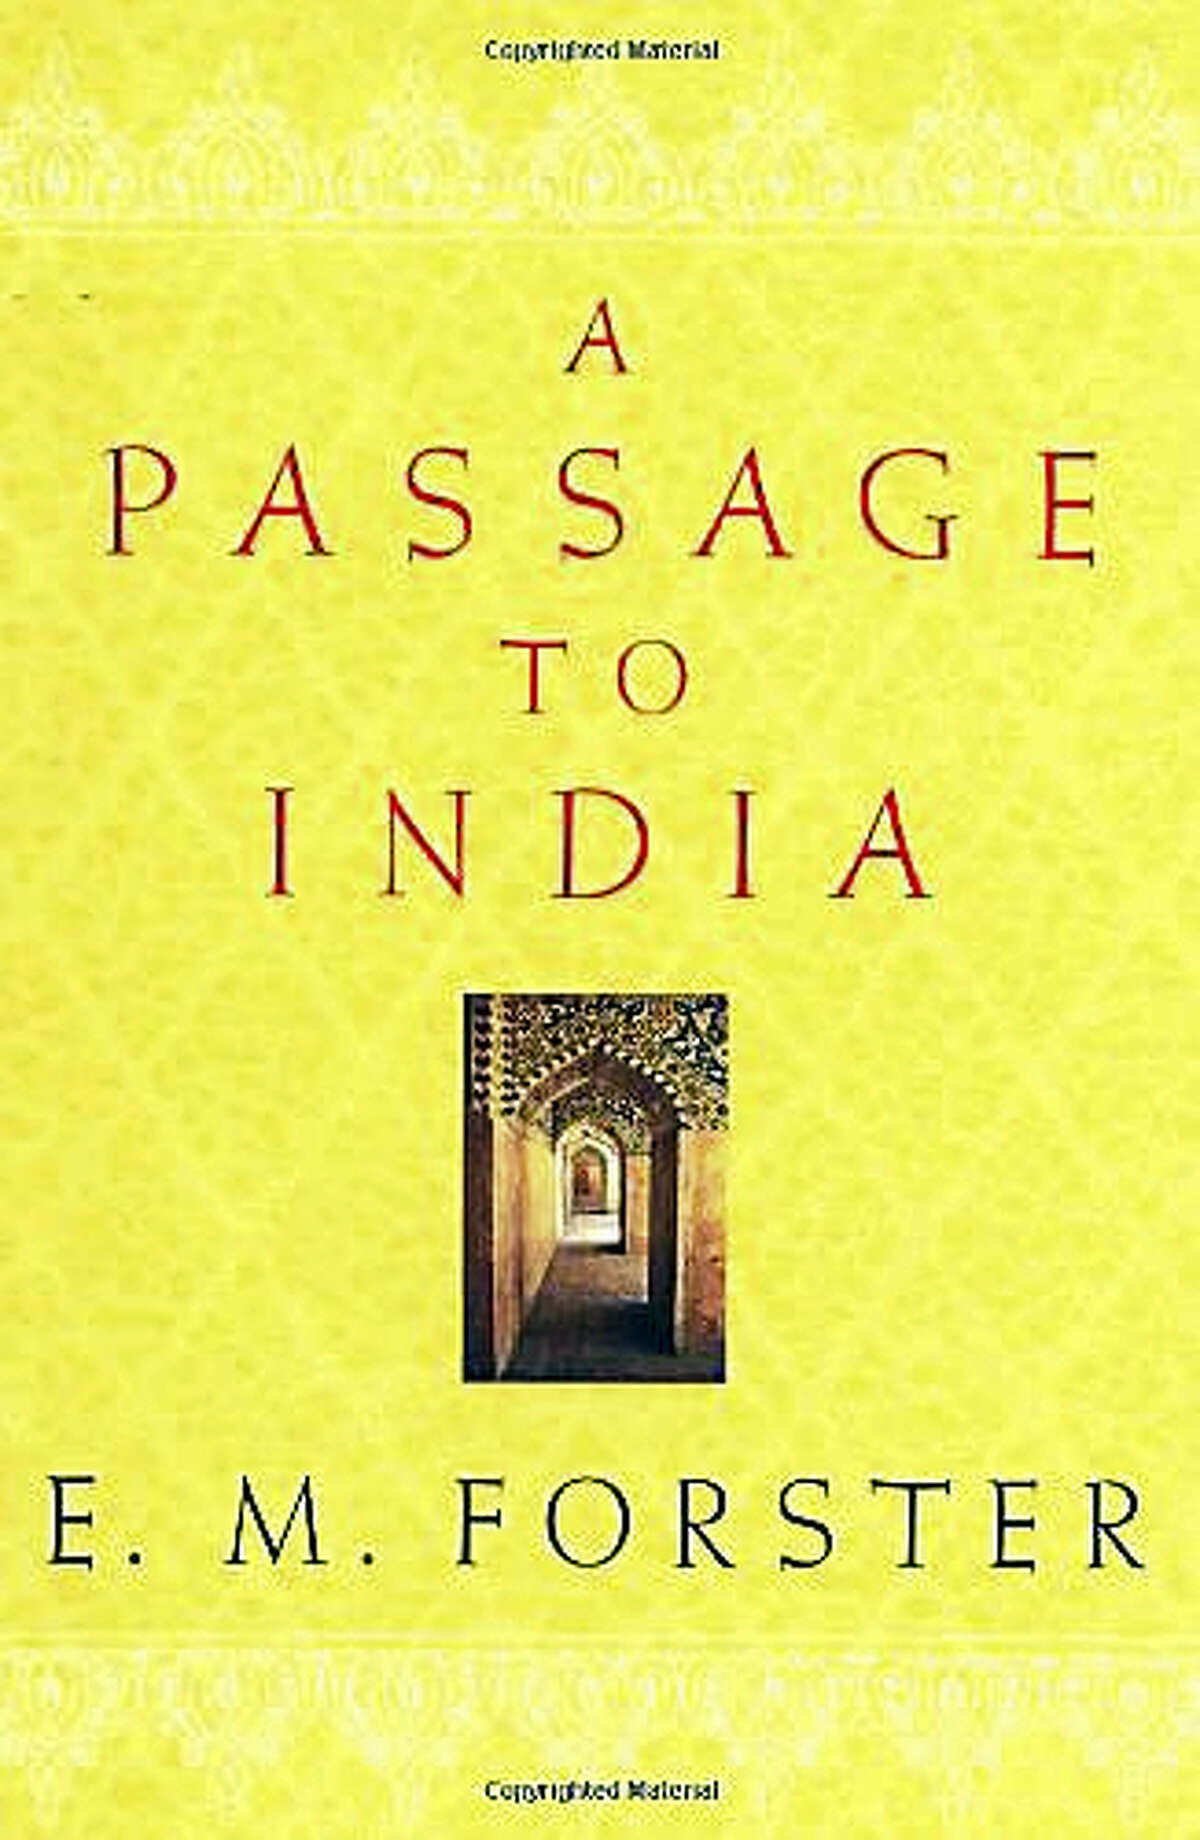 Books by E.M. Forster will be discussed at the Gunn Memorial Library in Washington on May 23 and June 13.